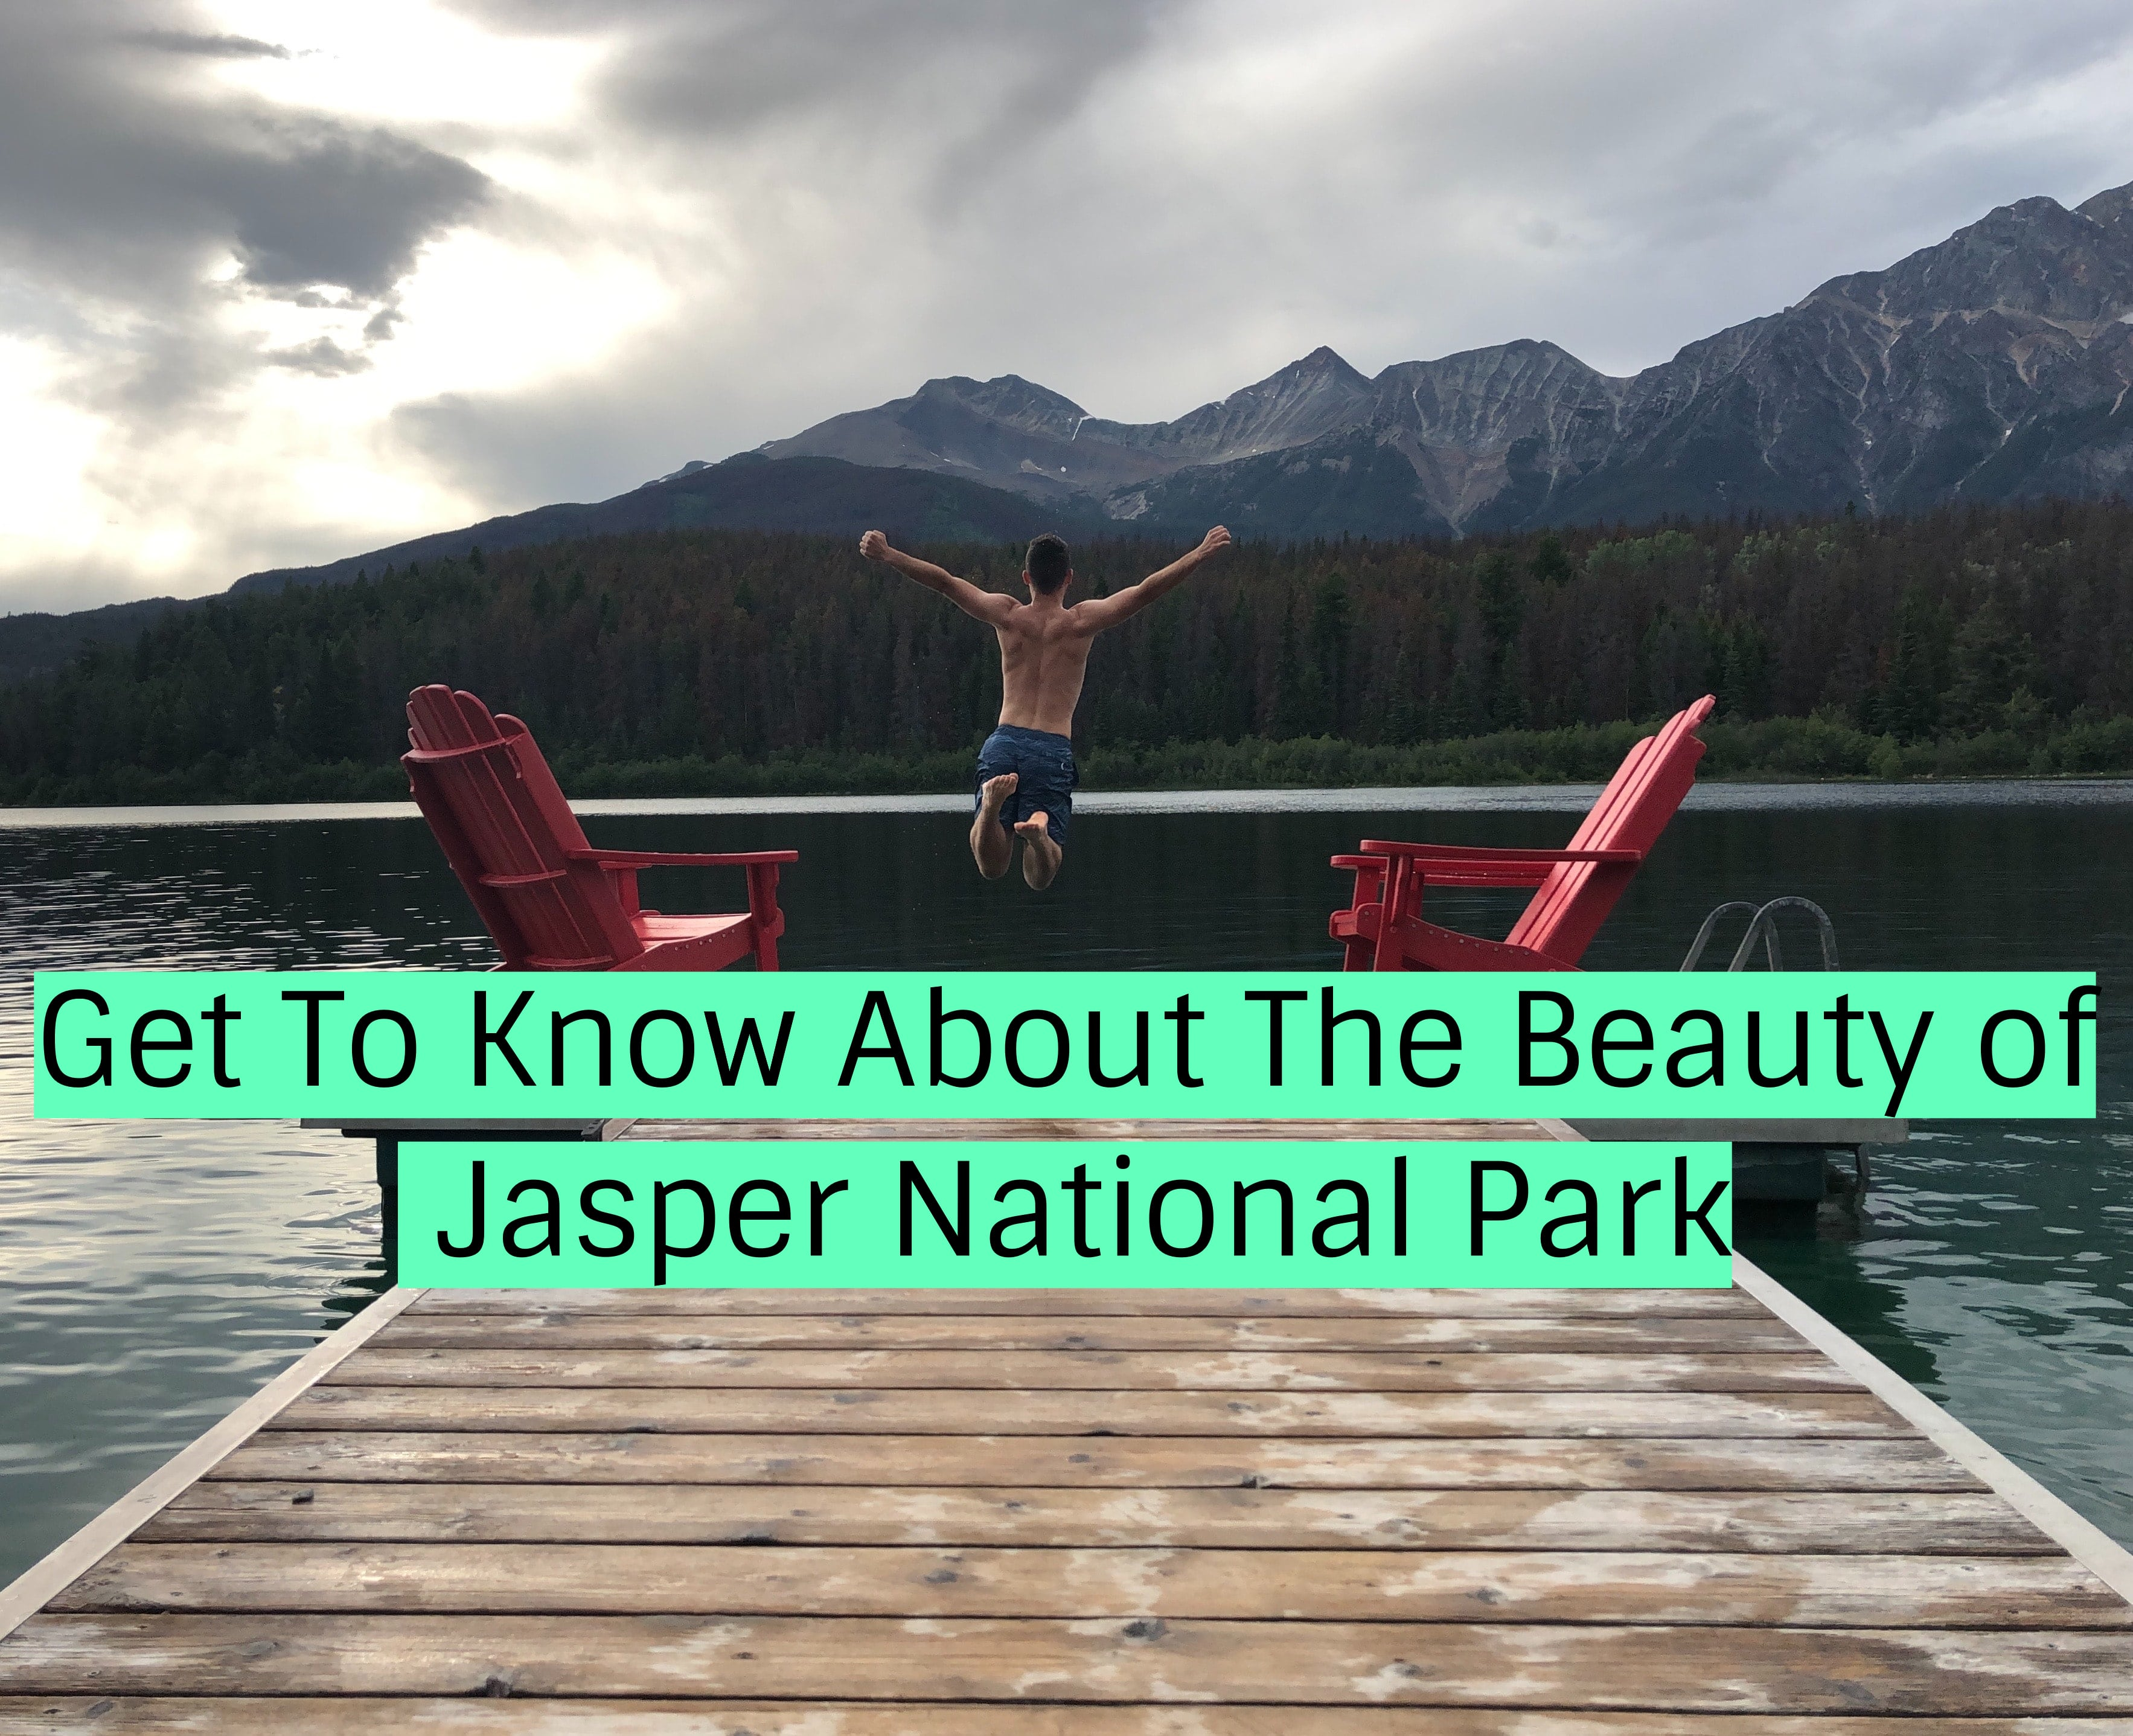 Get To Know About The Beauty of Jasper National Park